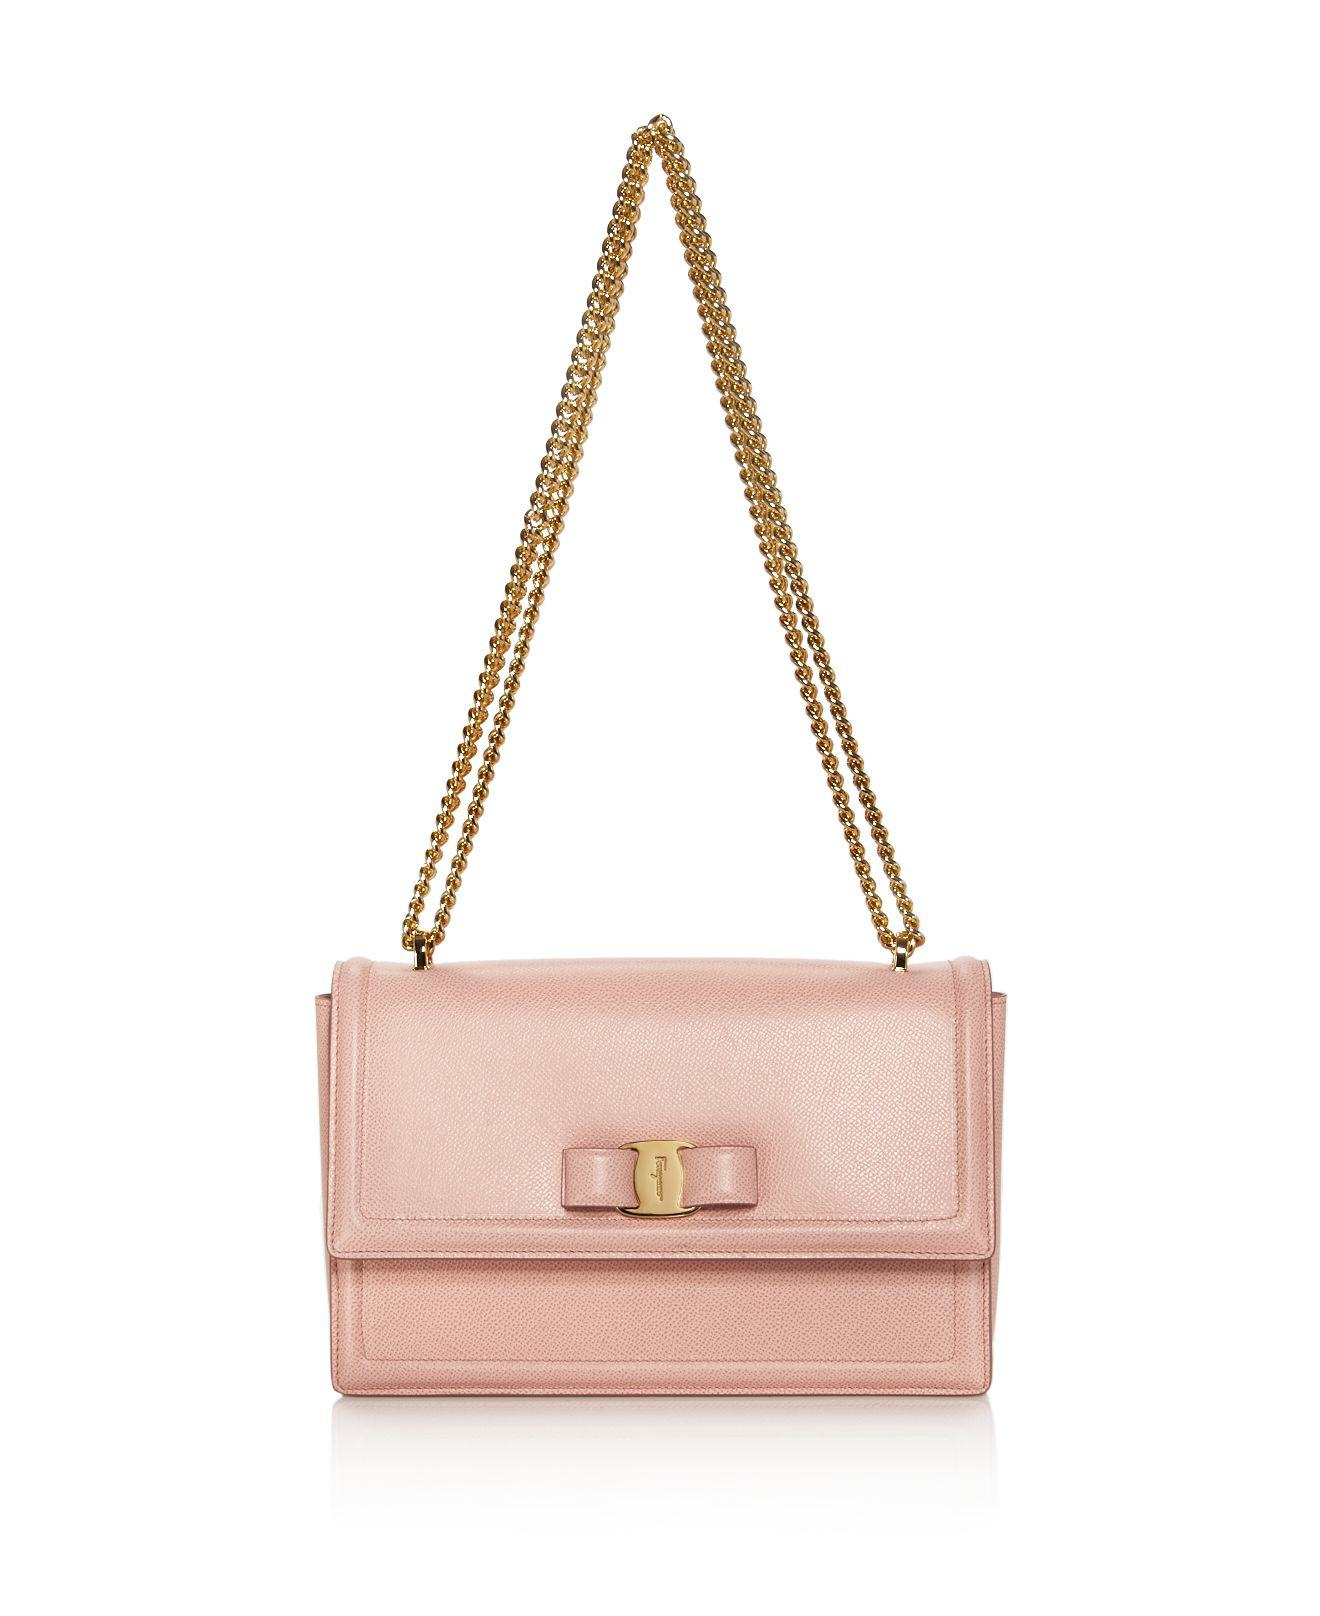 bbe0b7782110 Lyst - Ferragamo Ginny Leather Shoulder Bag in Pink